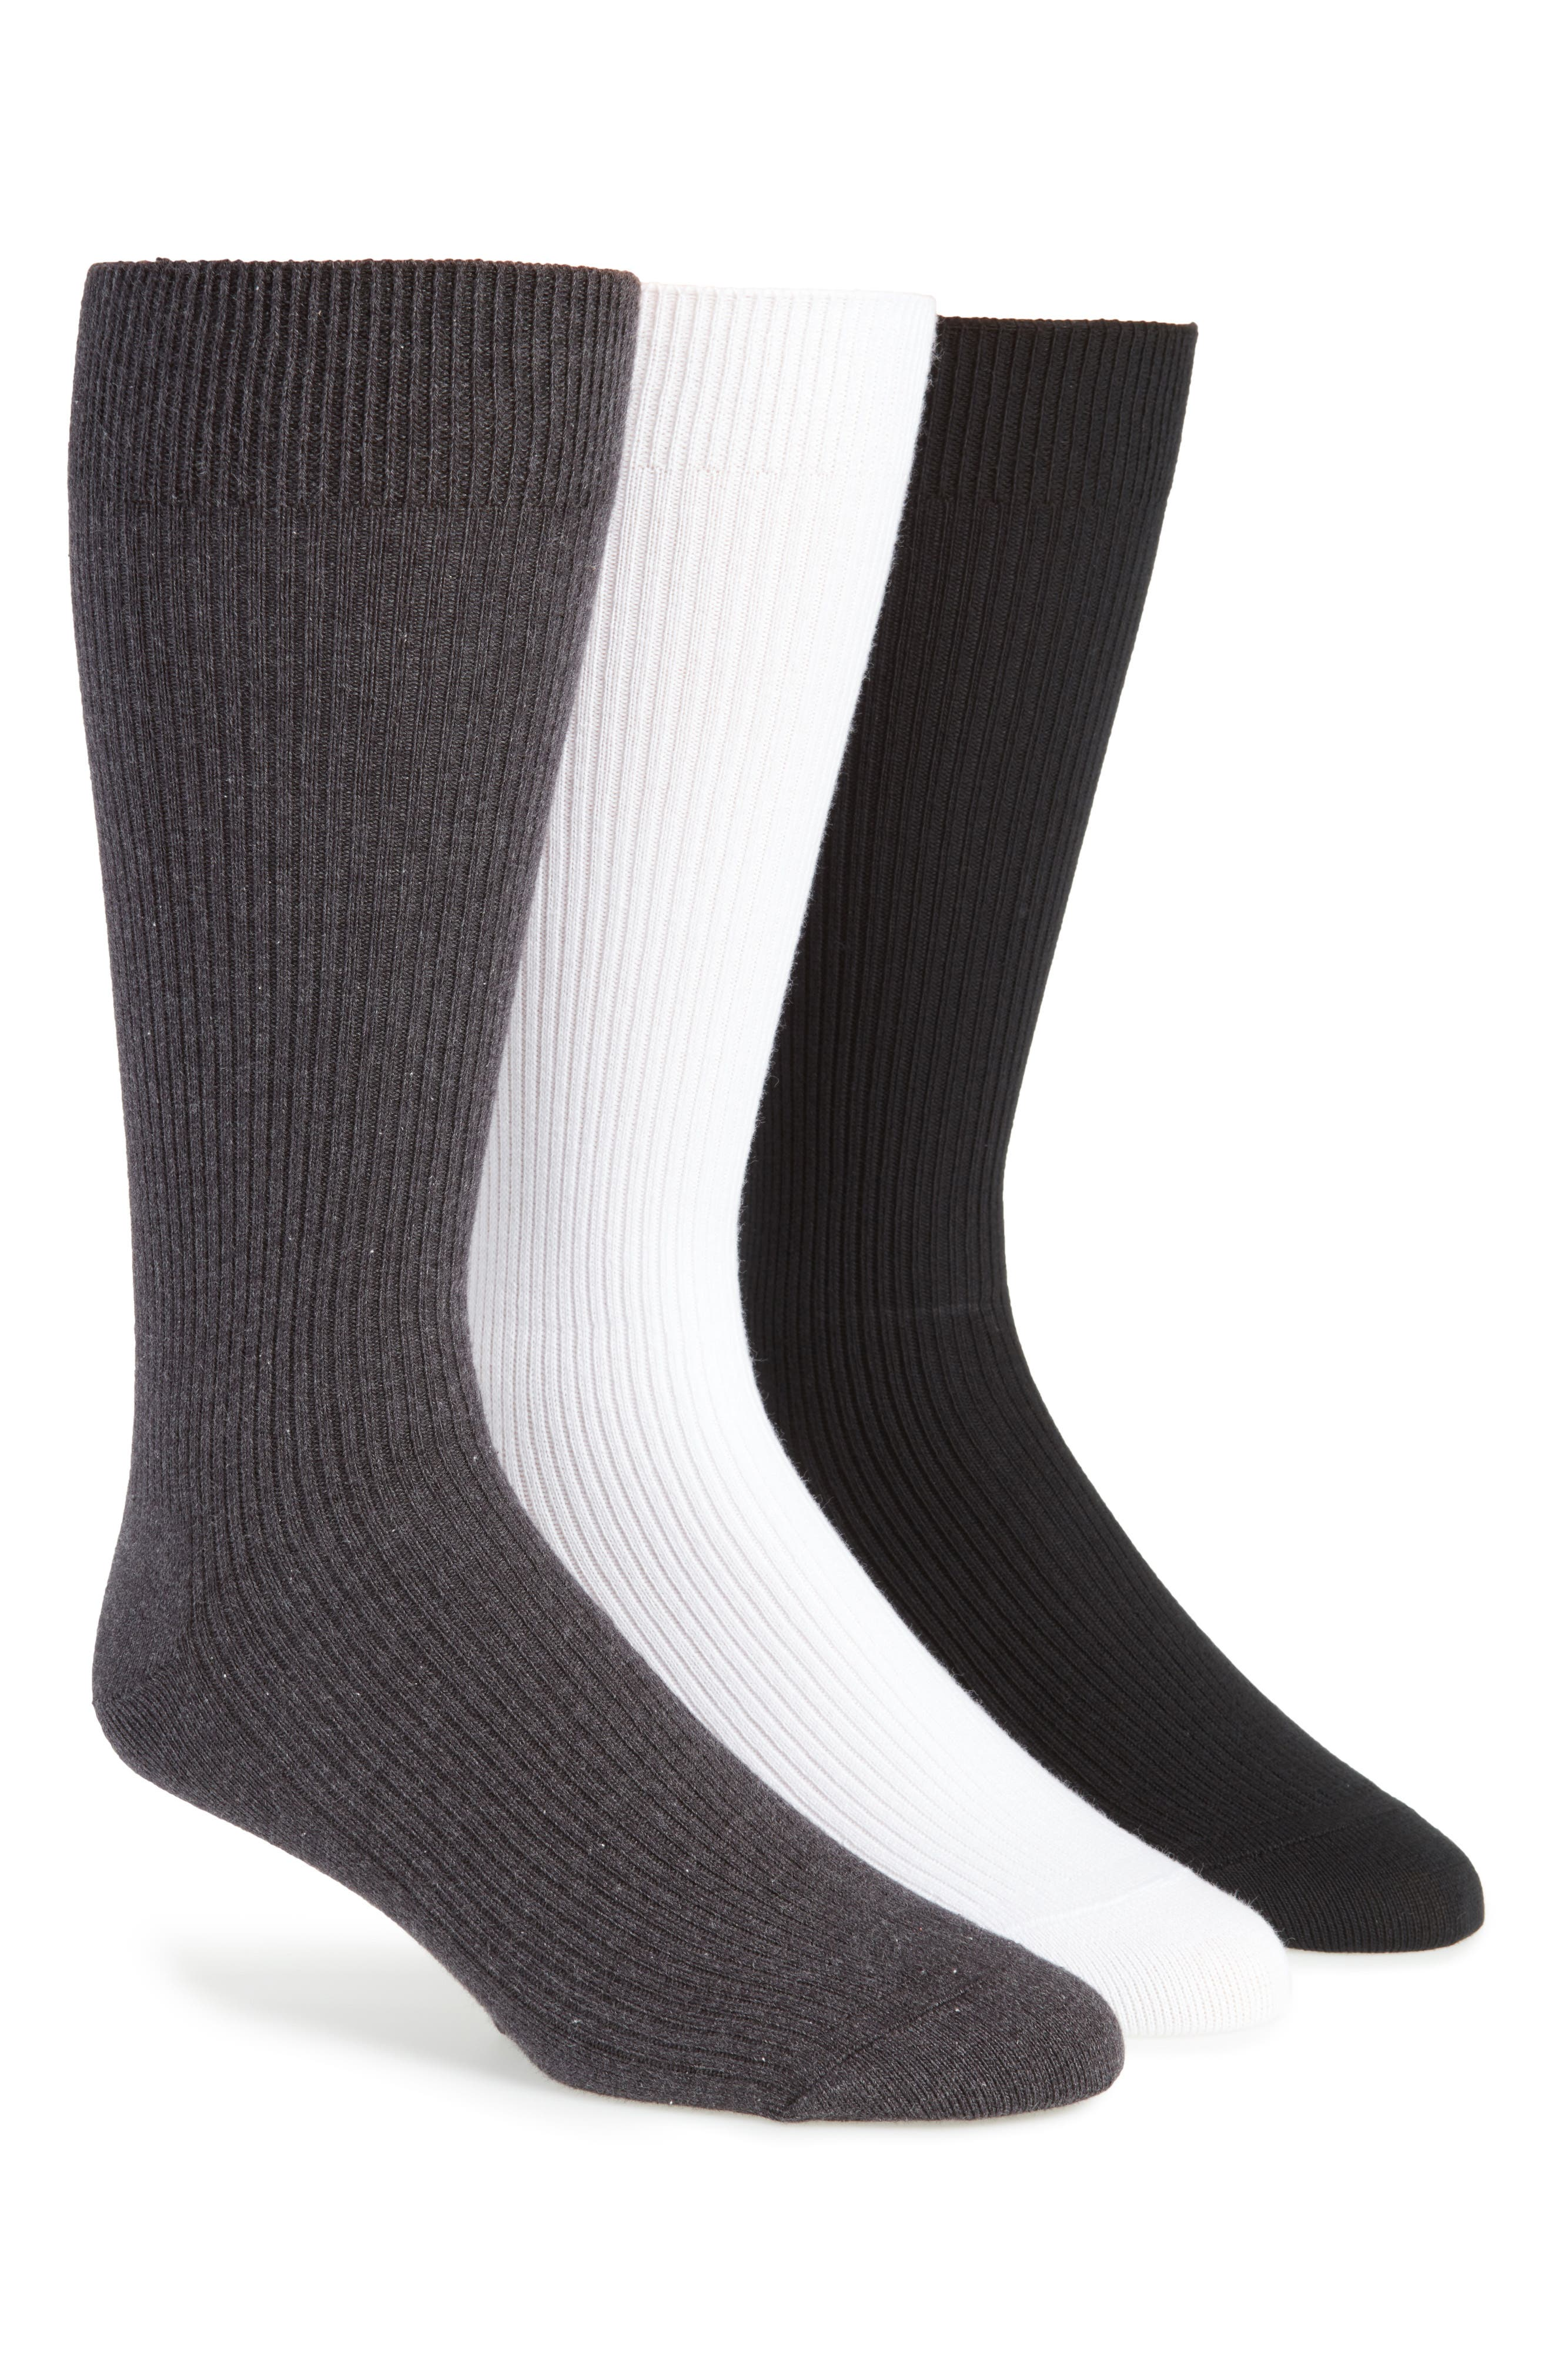 Alternate Image 1 Selected - Nordstrom Men's Shop 3-Pack Socks